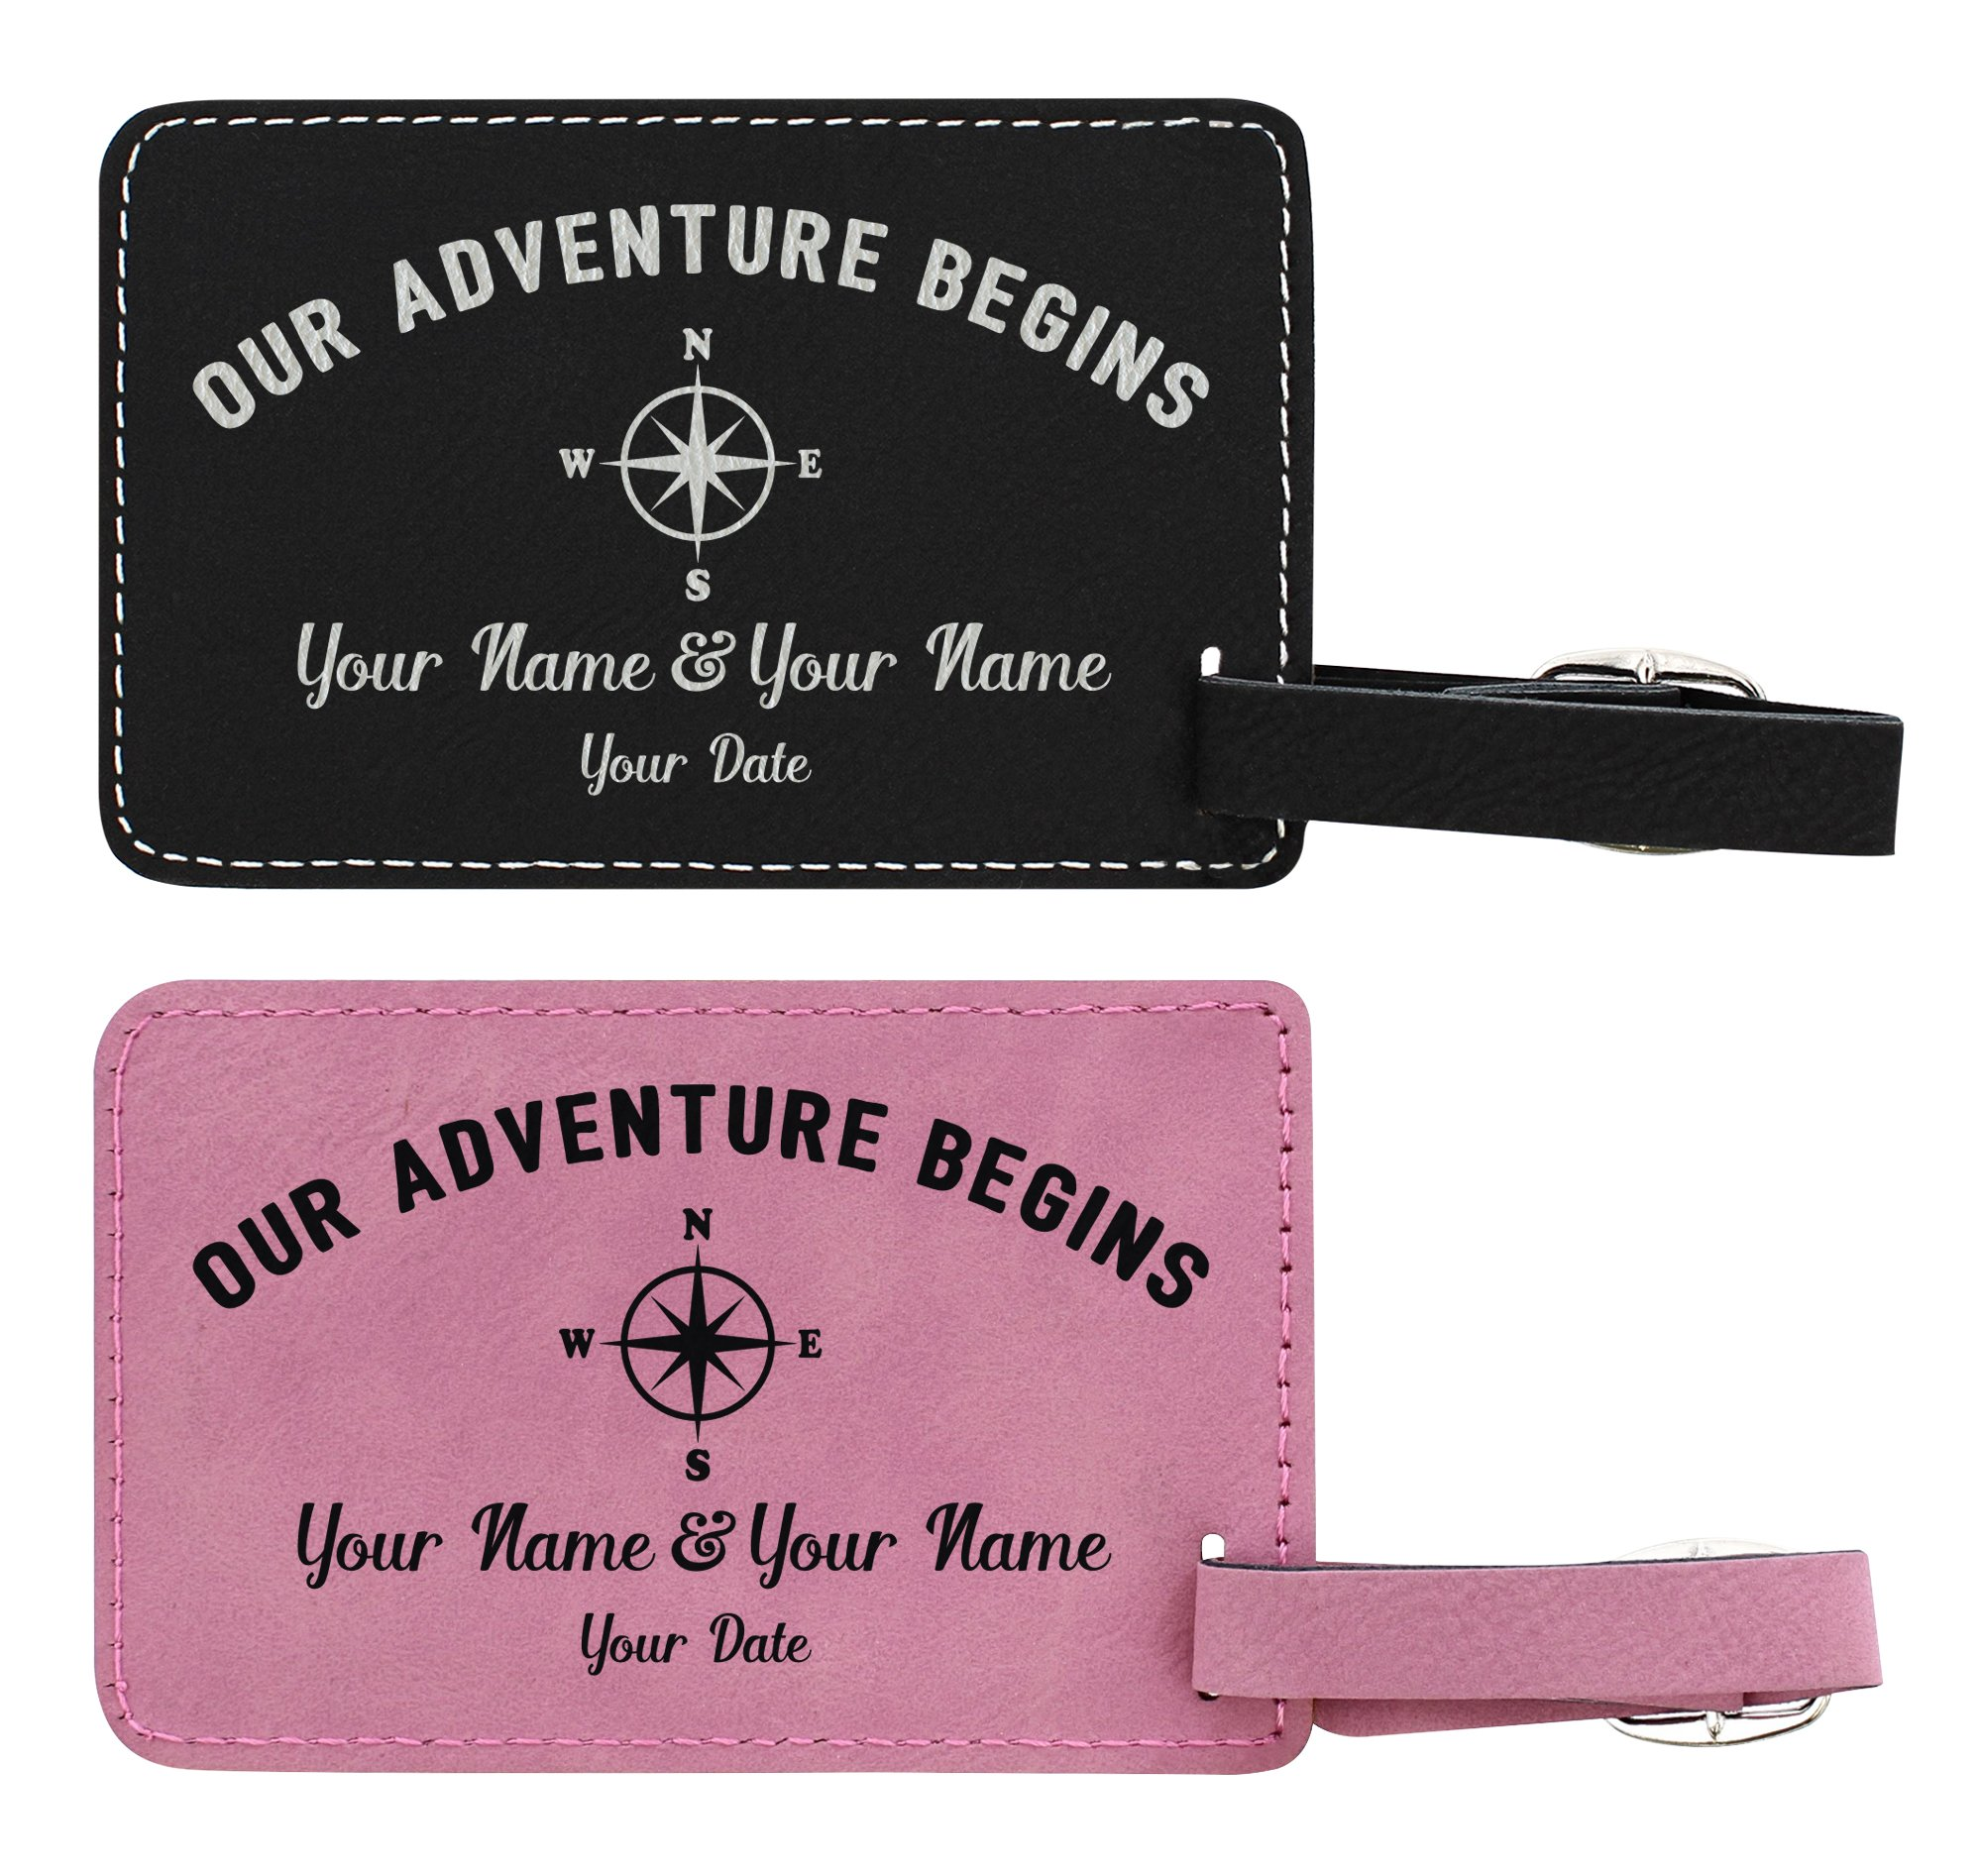 Personalized Names & Date Adventure 2-pack Laser Engraved Leather Customized Luggage Tags Pink & Black by Personalized Gifts